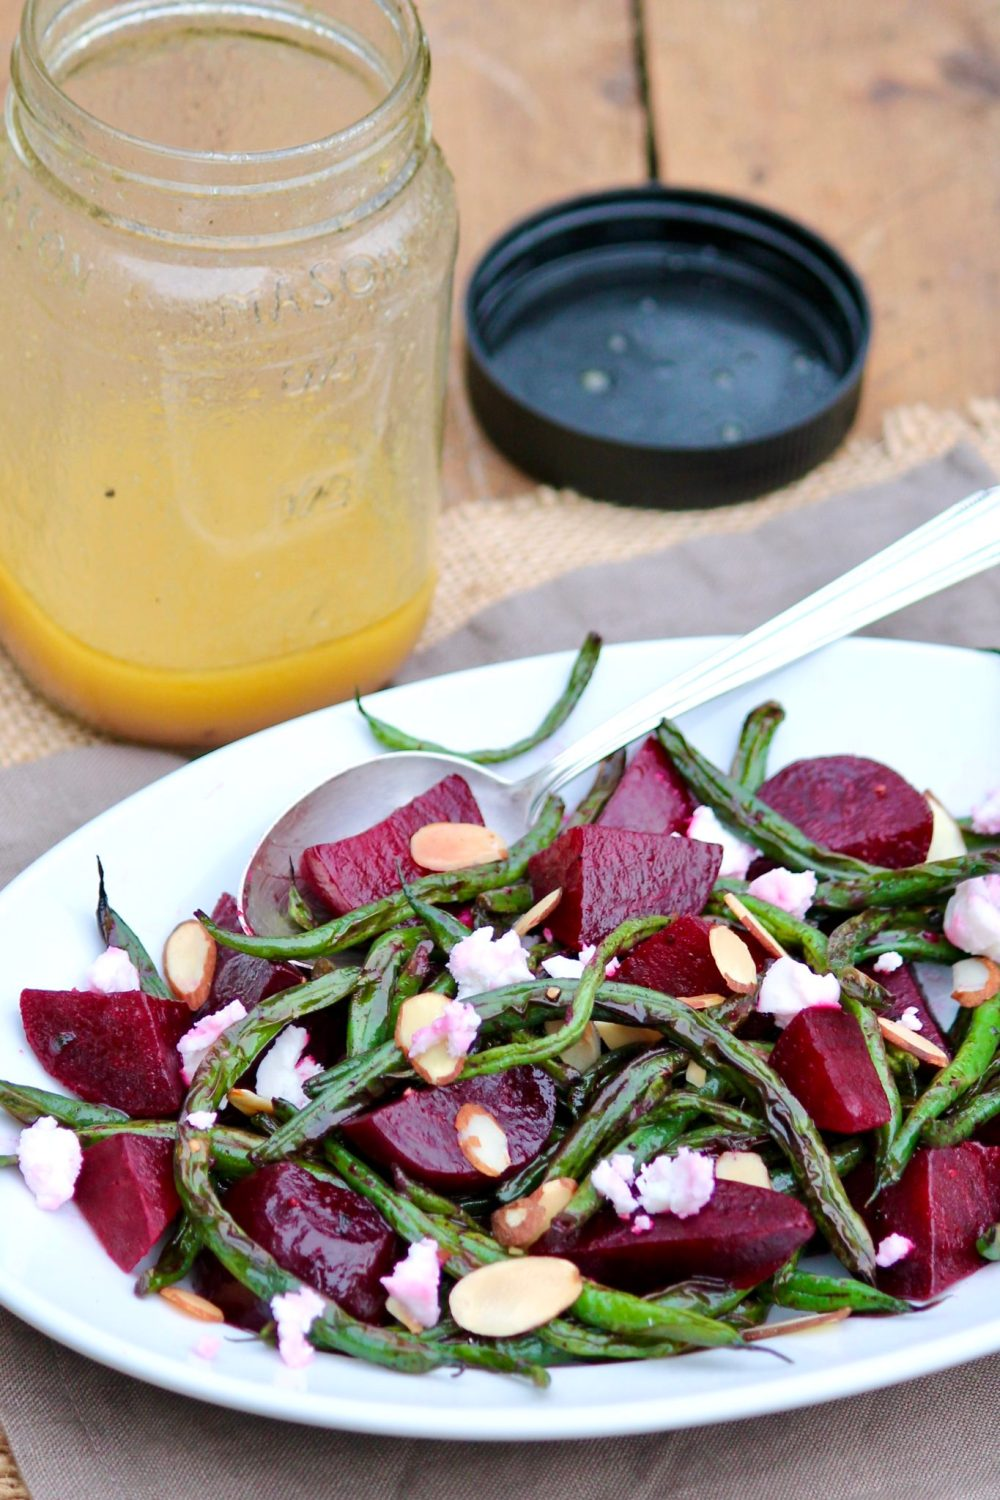 Clever cooking techniques, make-ahead convenience, and lots of options add to the appeal of this vibrant salad.The versatile vinaigrette is an absolute keeper that comes together quickly with basic pantry items.